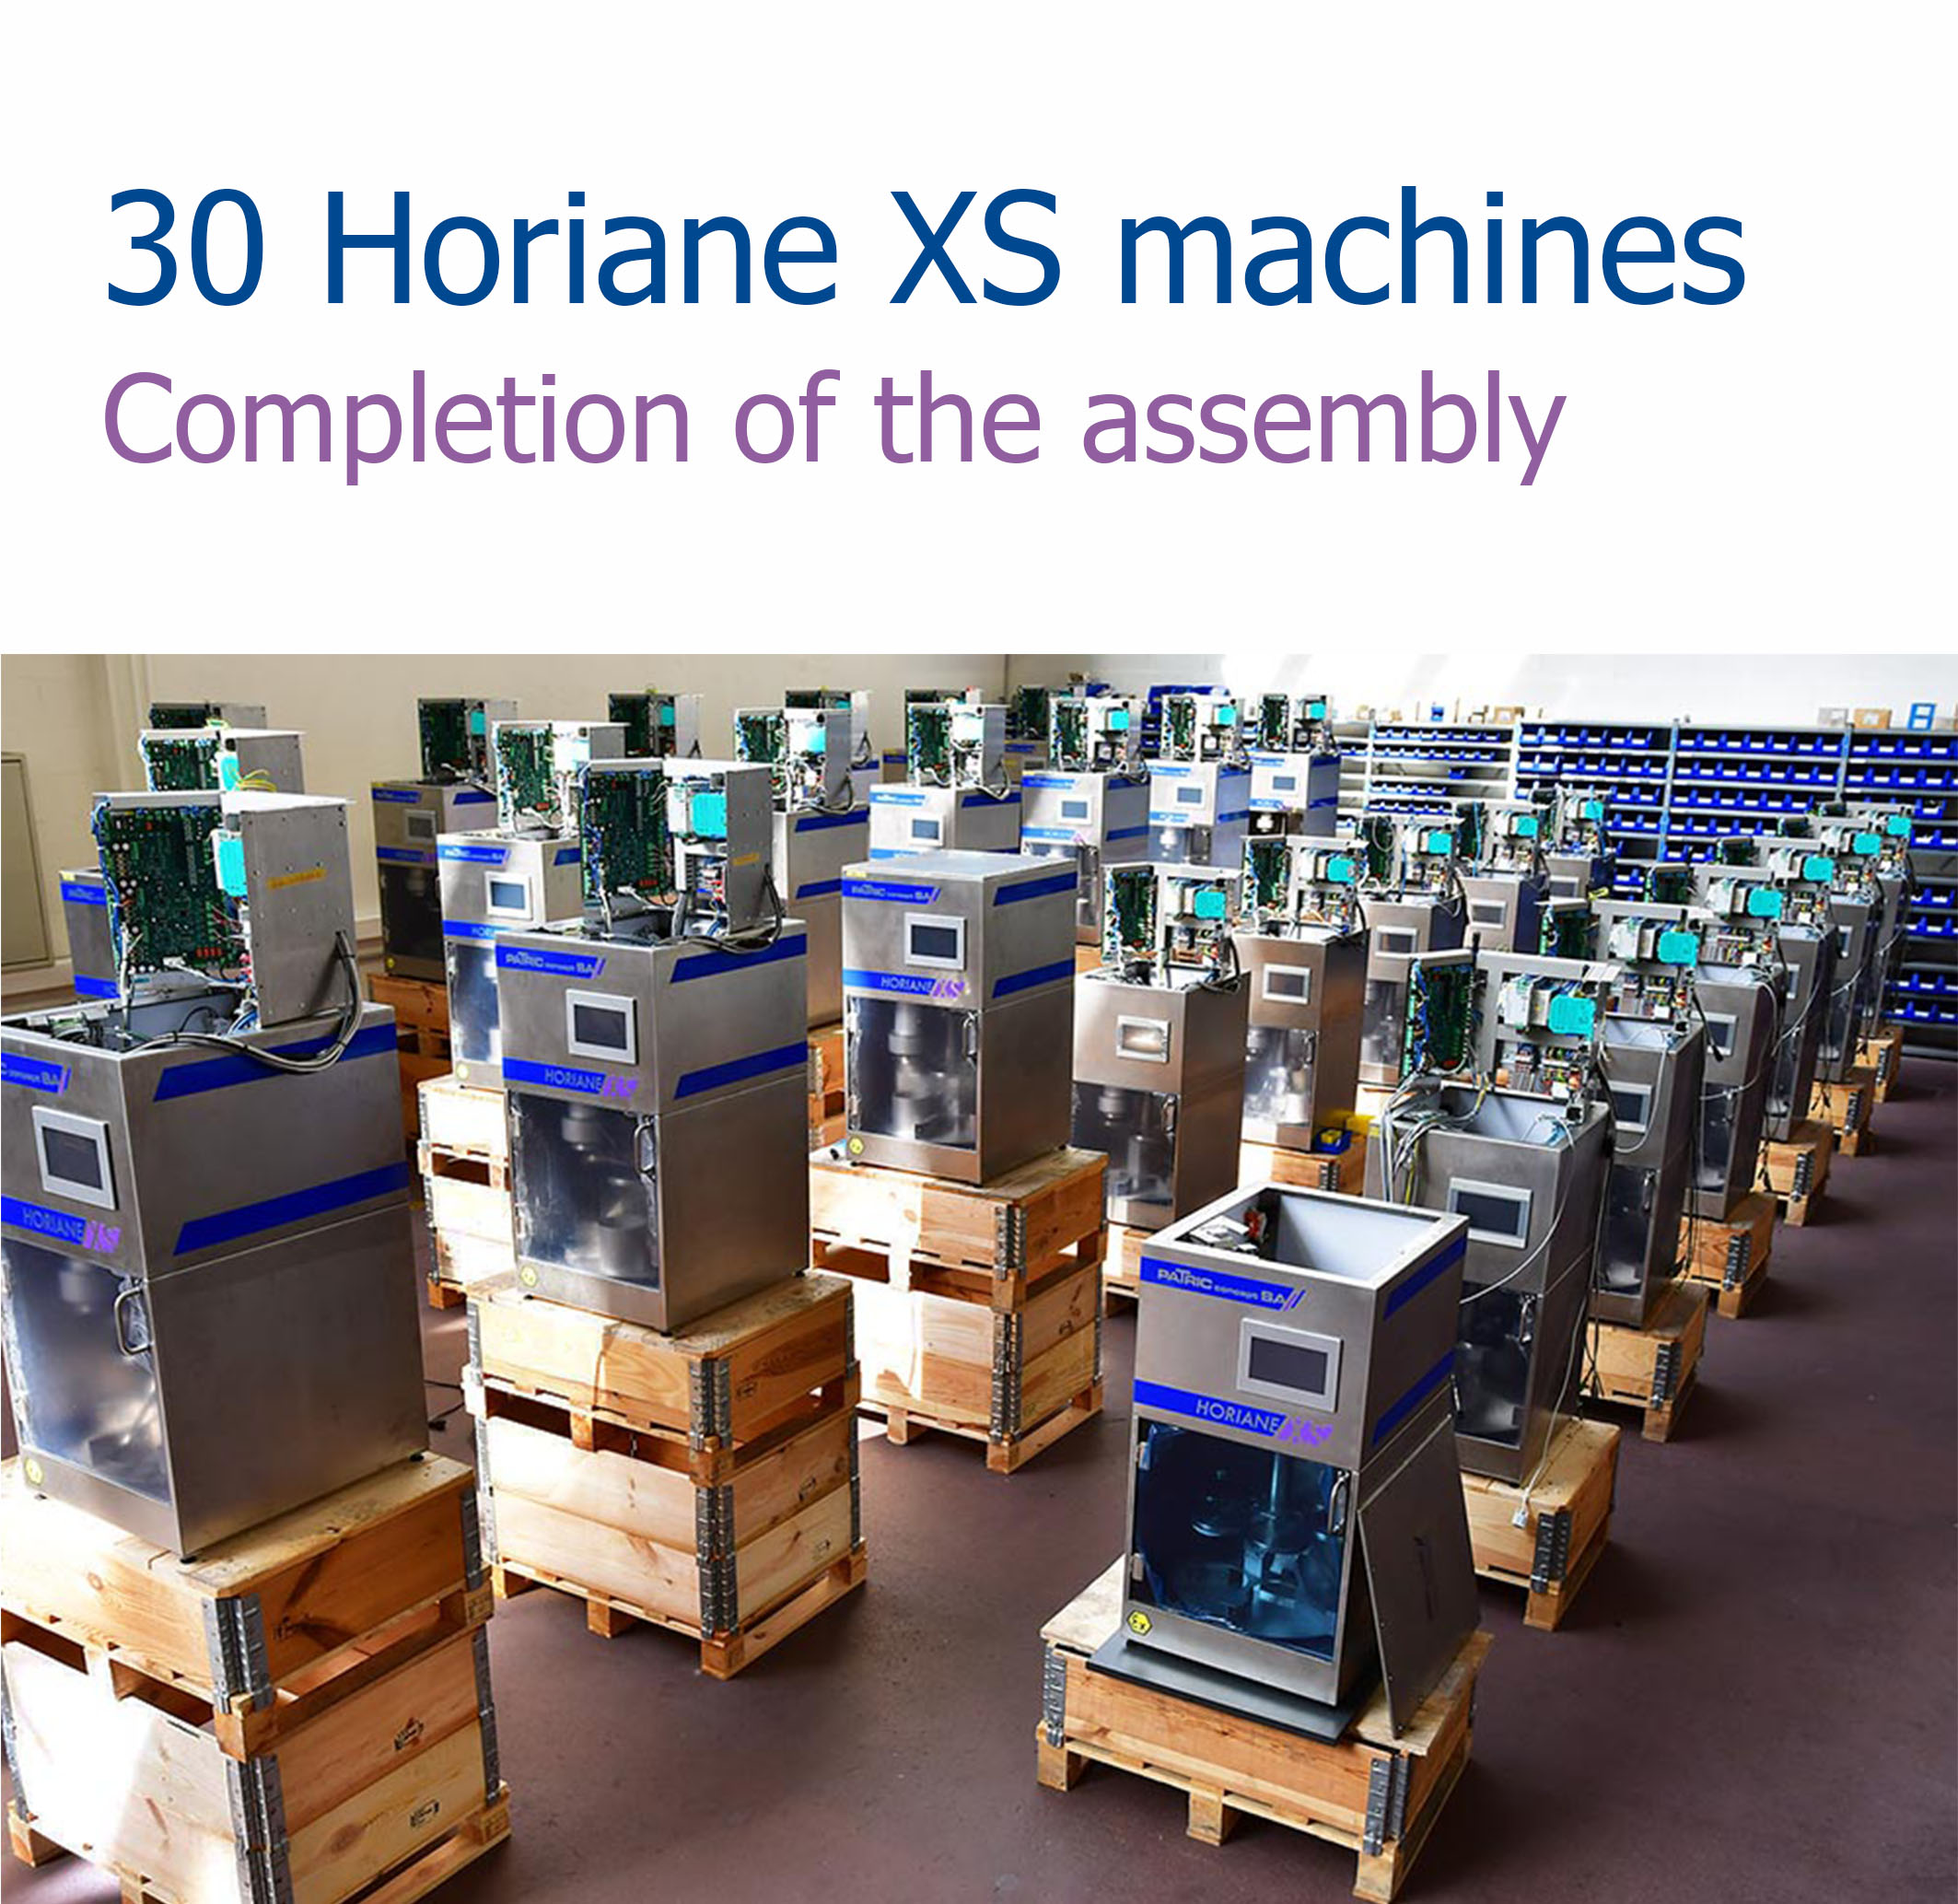 Horiane XS assembly completion of 30  machines